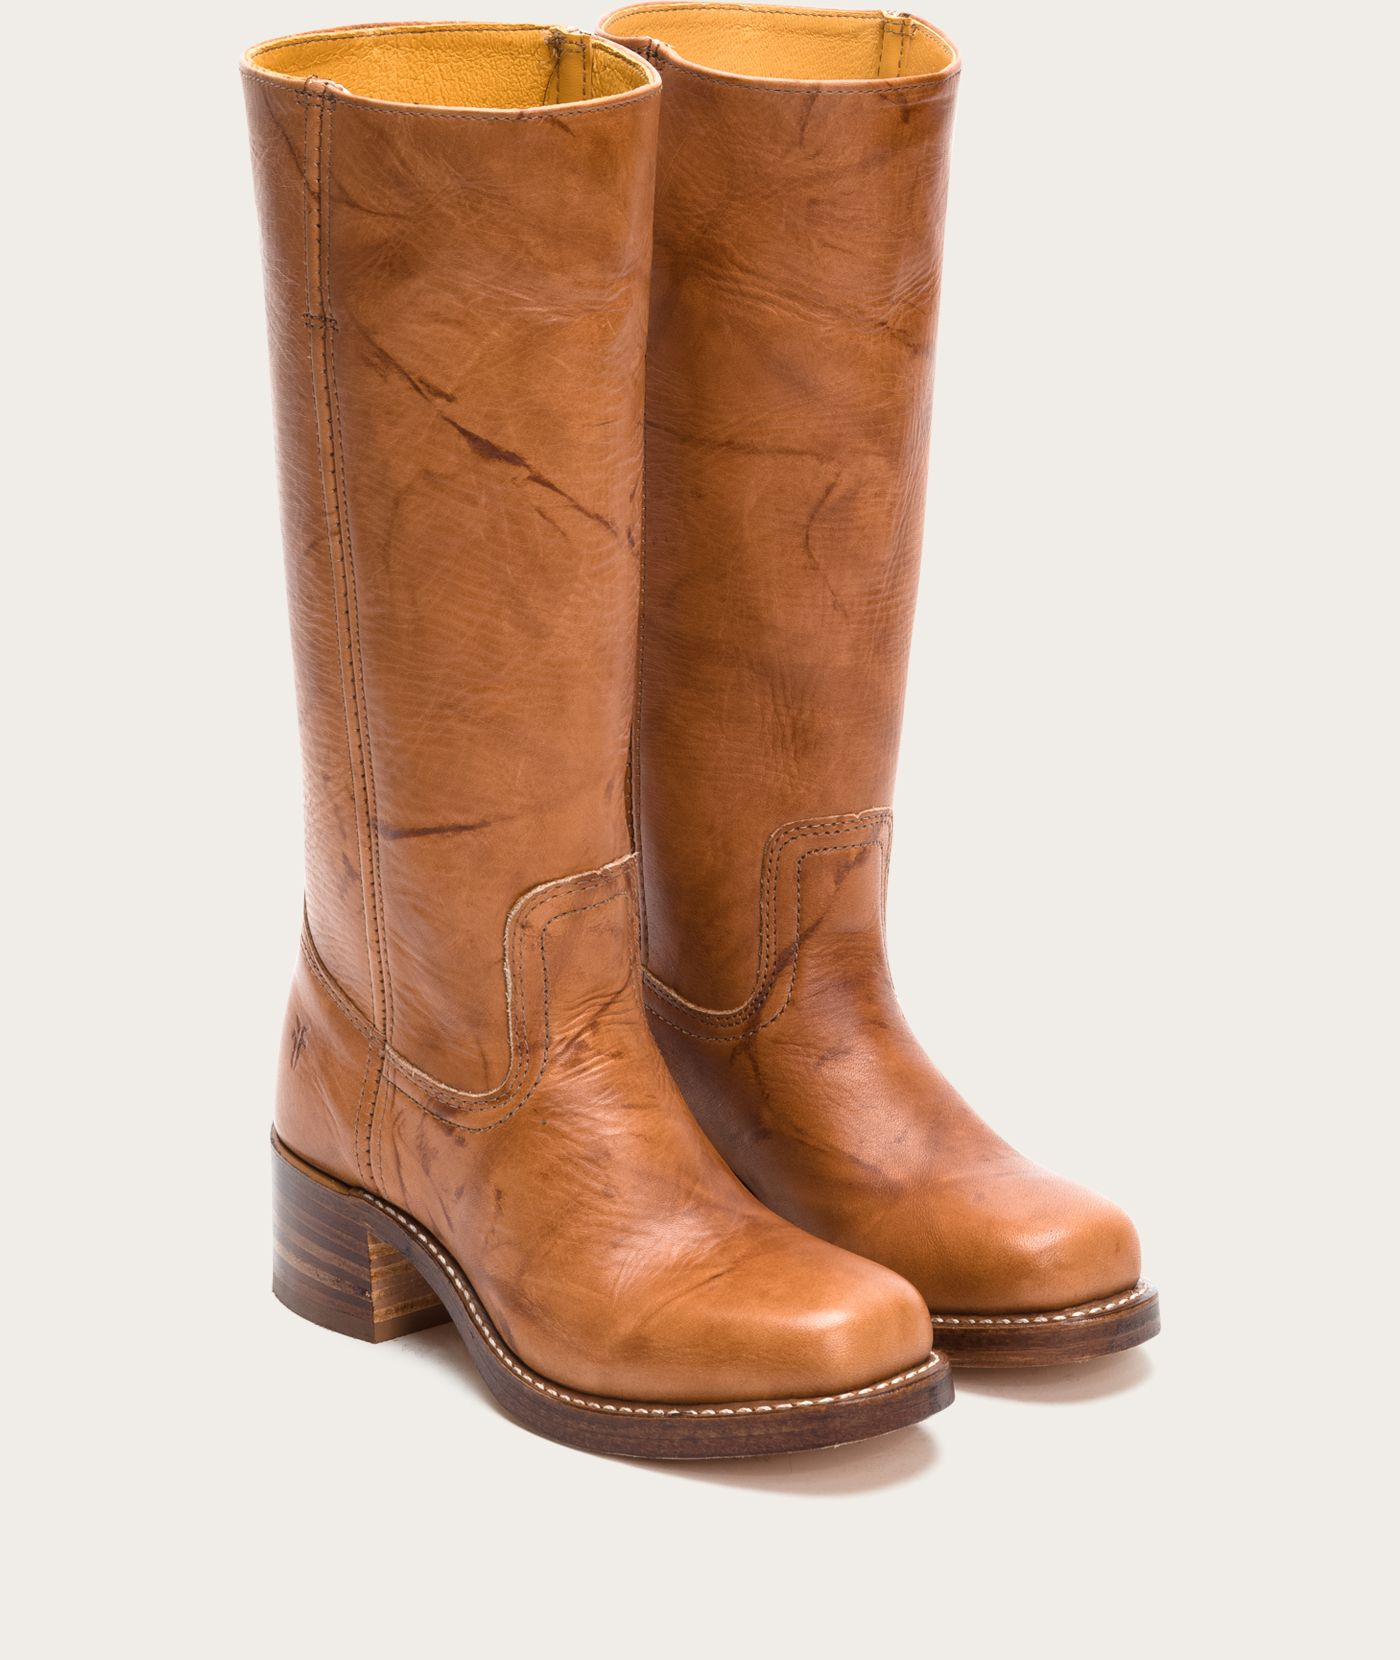 f8ca38cd Campus 14L Frye Boots, Goodyear Welt, Leather Boots, Saddles, Cowboy Boots,